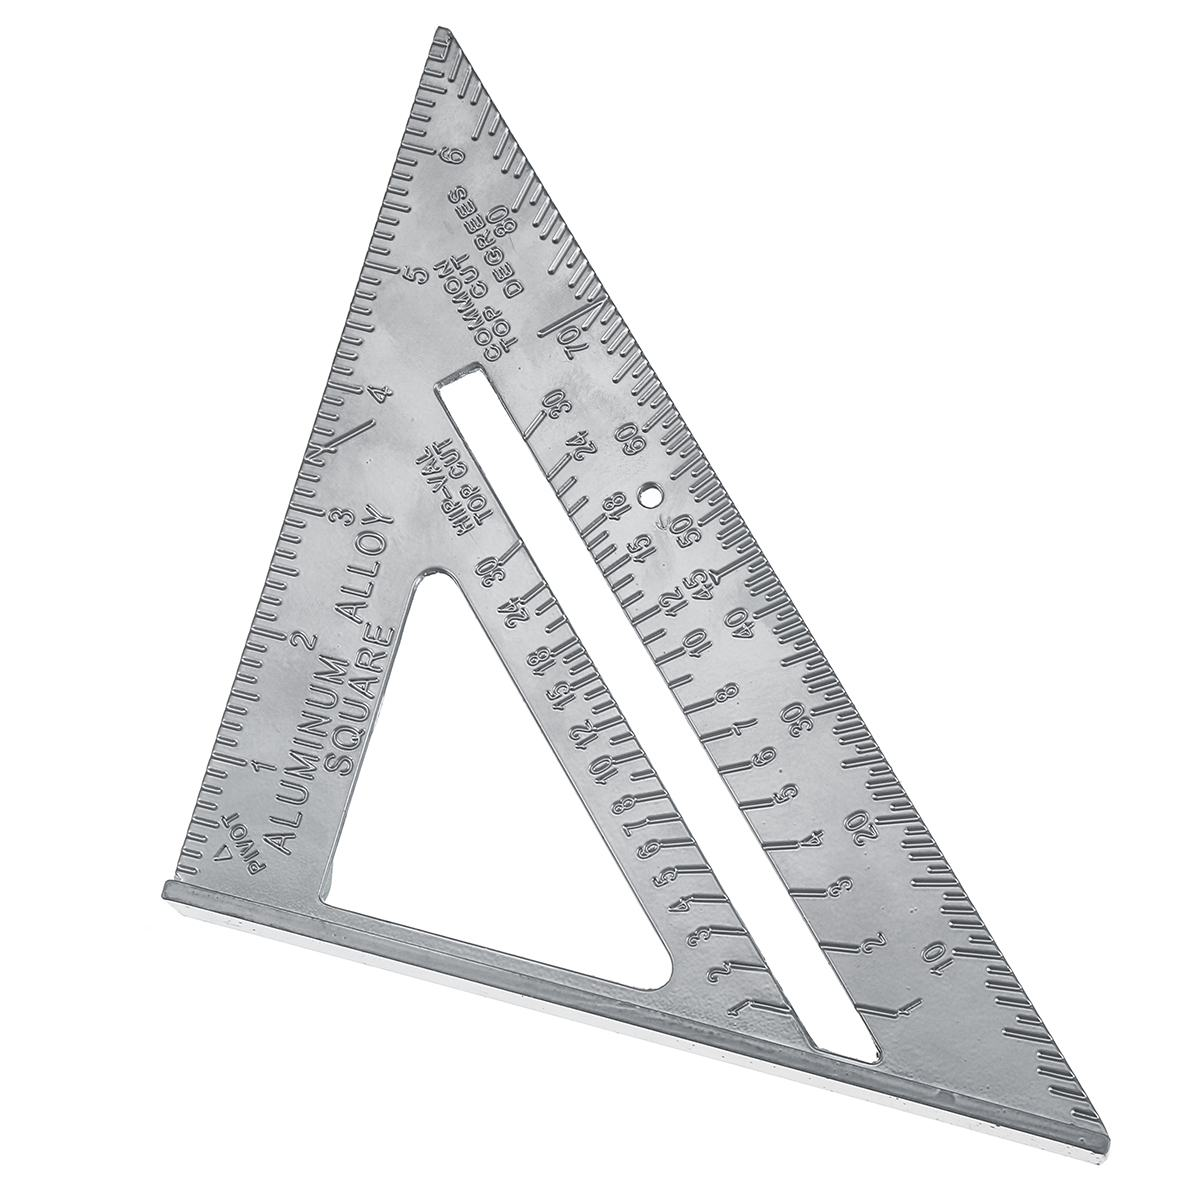 Zeast 7 Inch Aluminum Alloy Measuring Ruler Speed Square Roofing